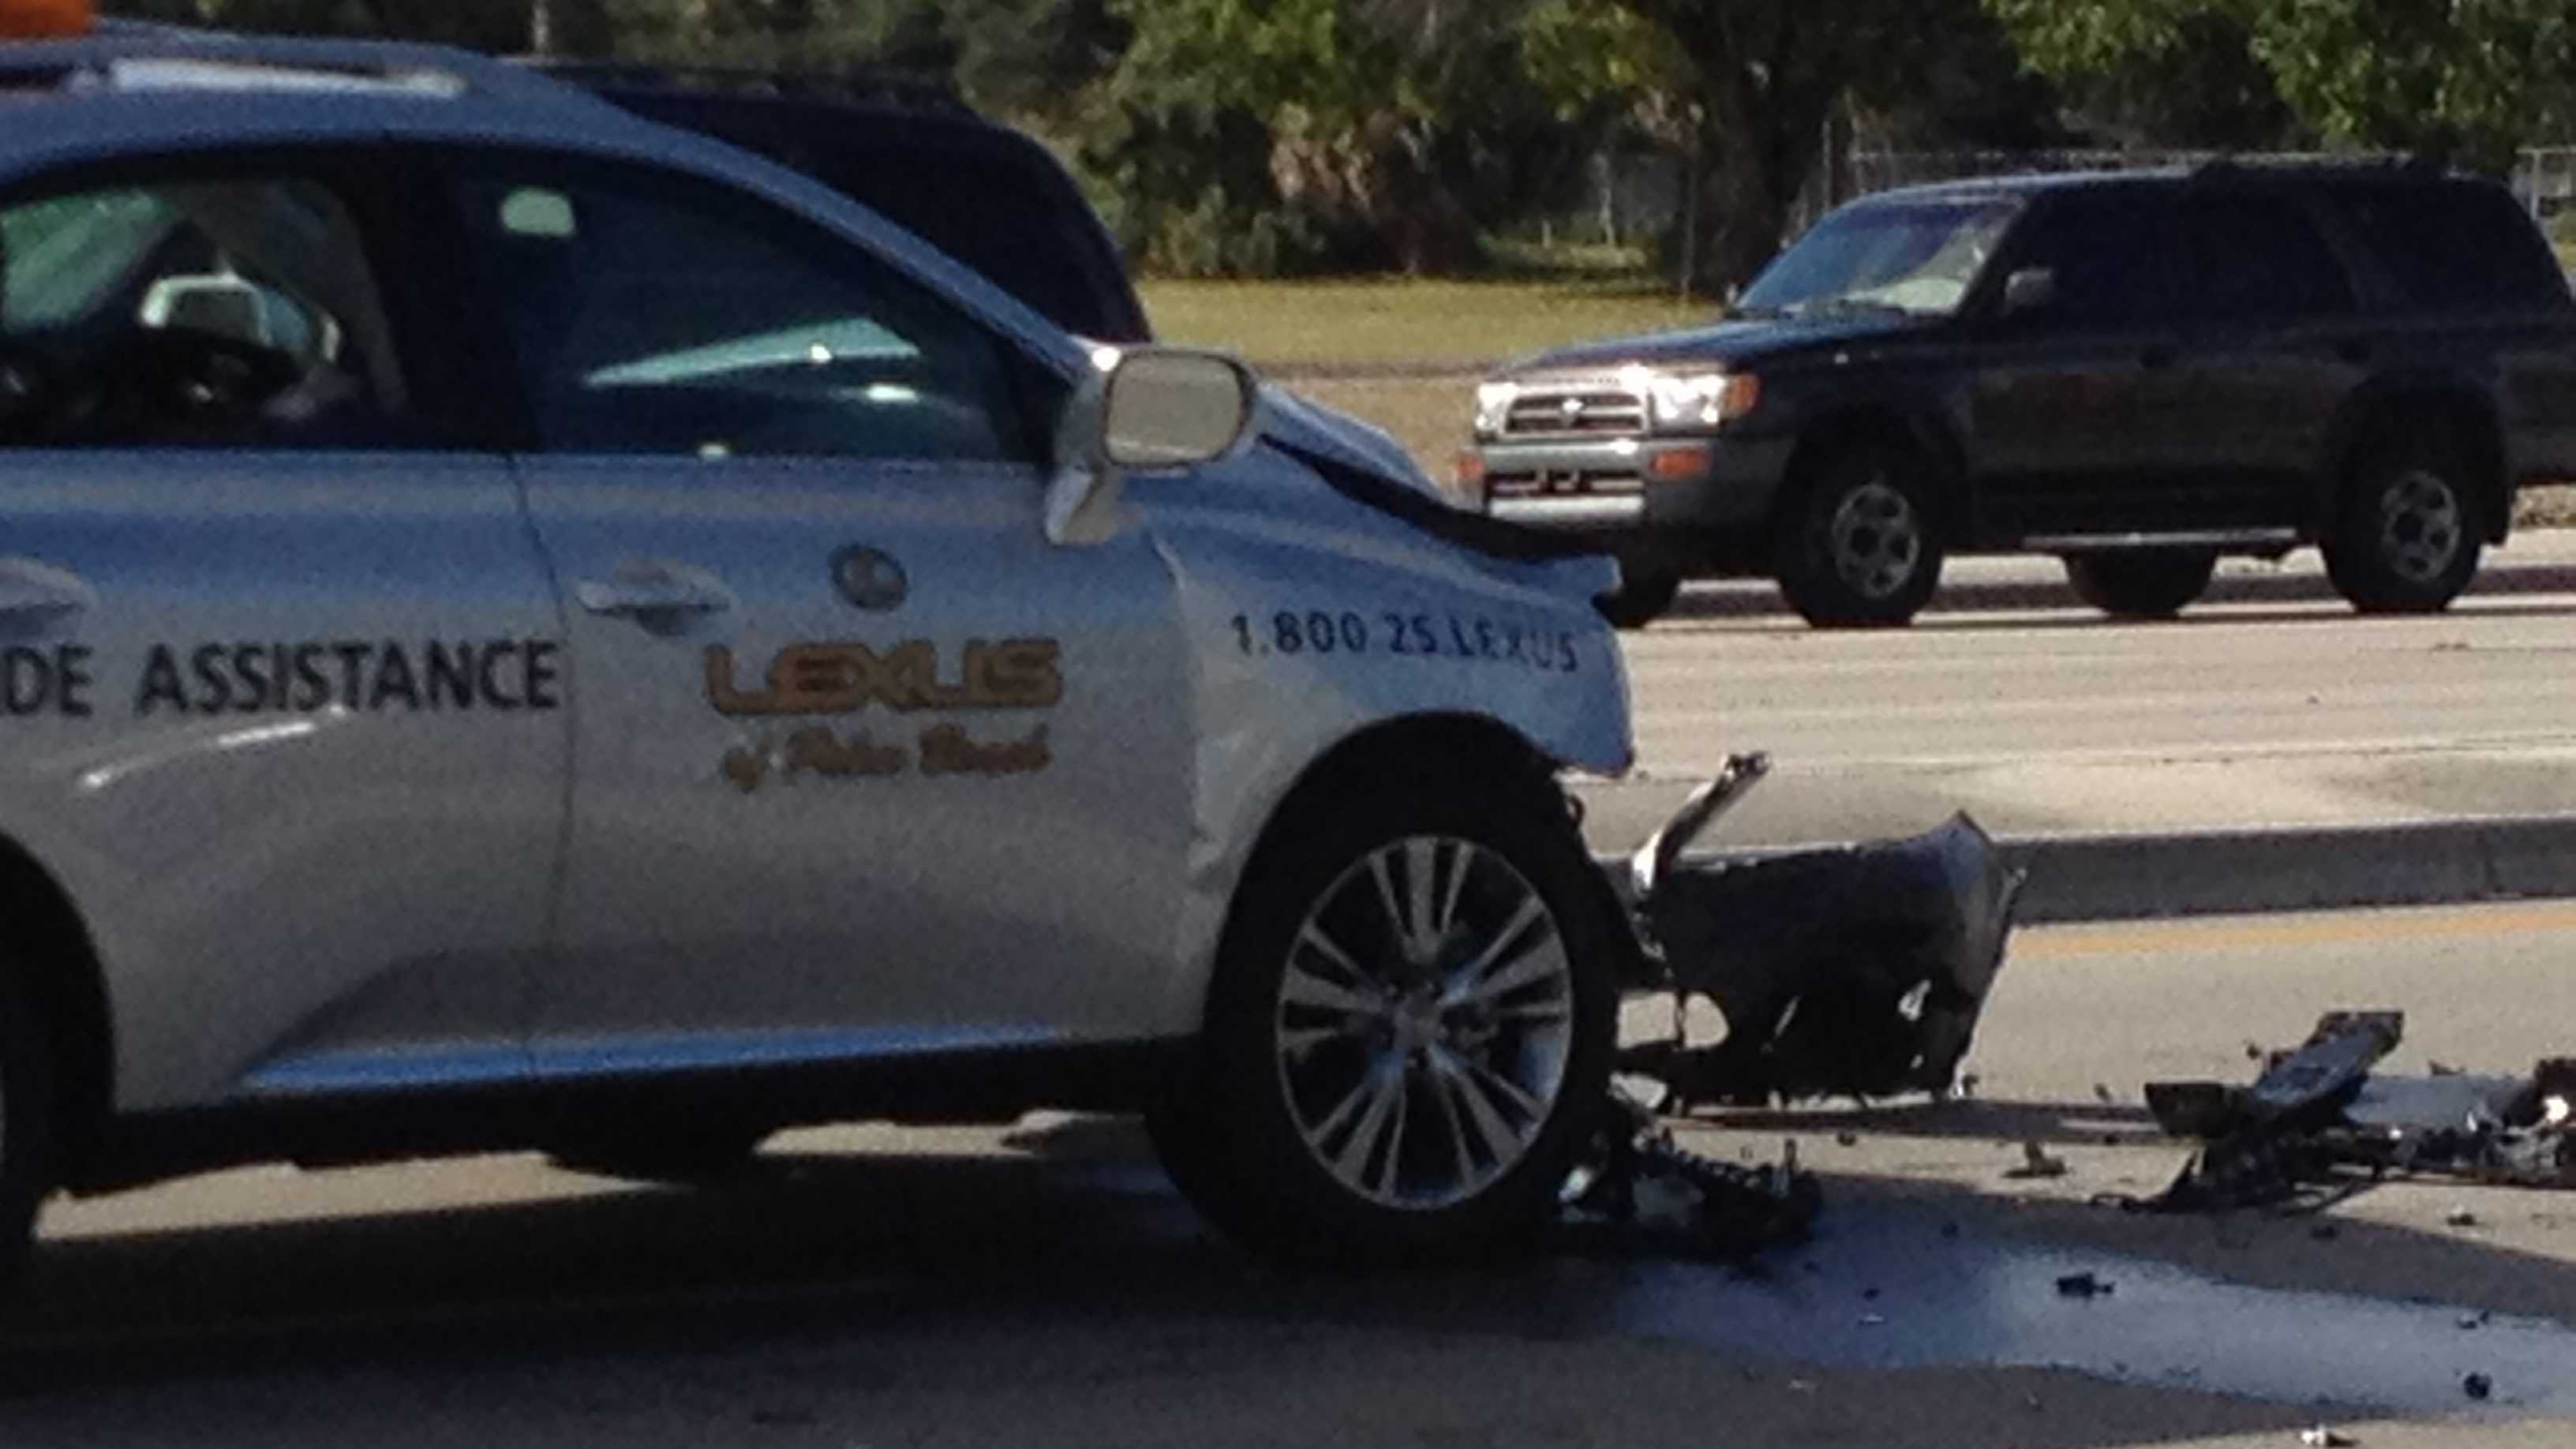 A passenger was ejected after a three-vehicle crash on Okeechobee Boulevard in West Palm Beach.